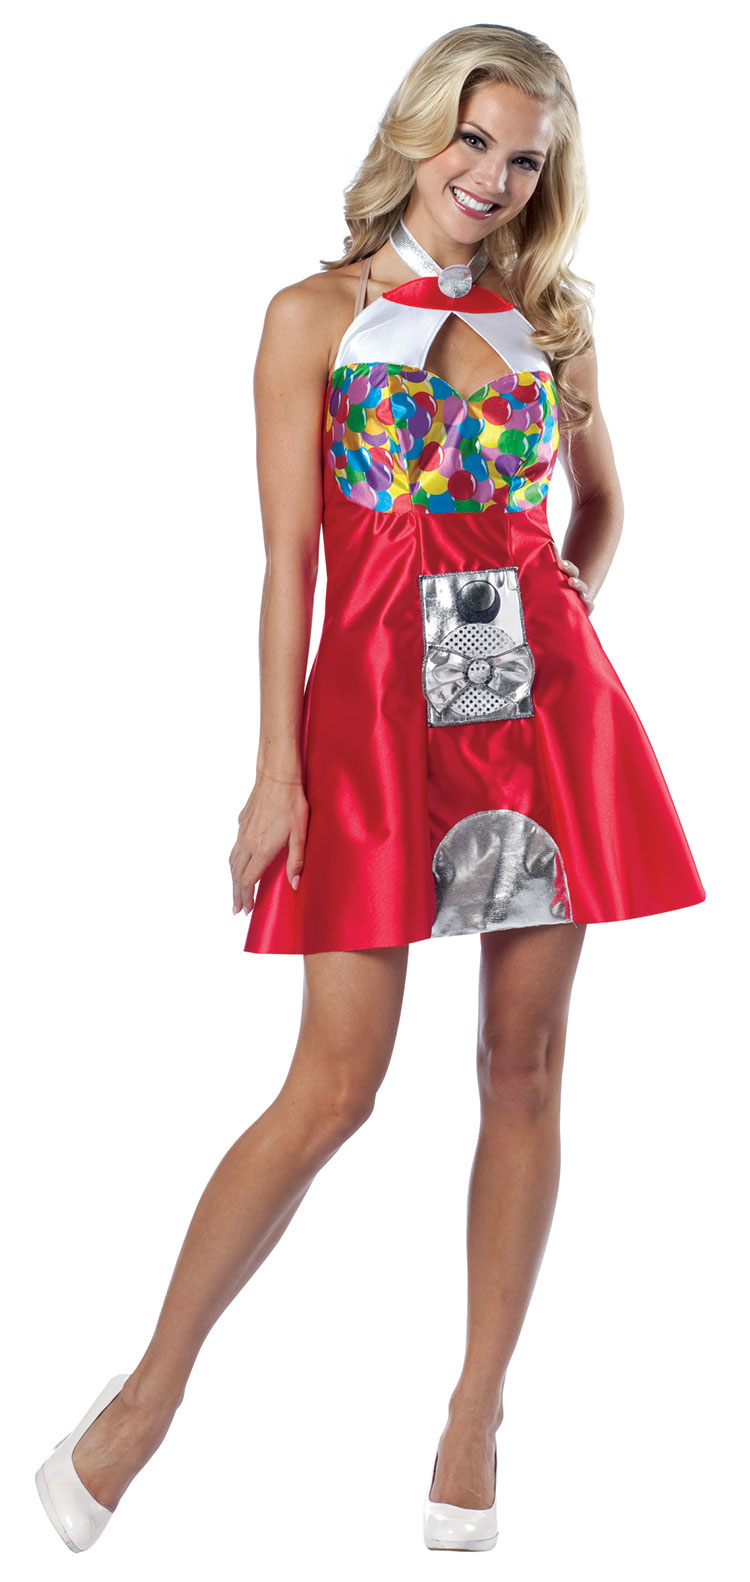 Gumball Machine Costume Dress